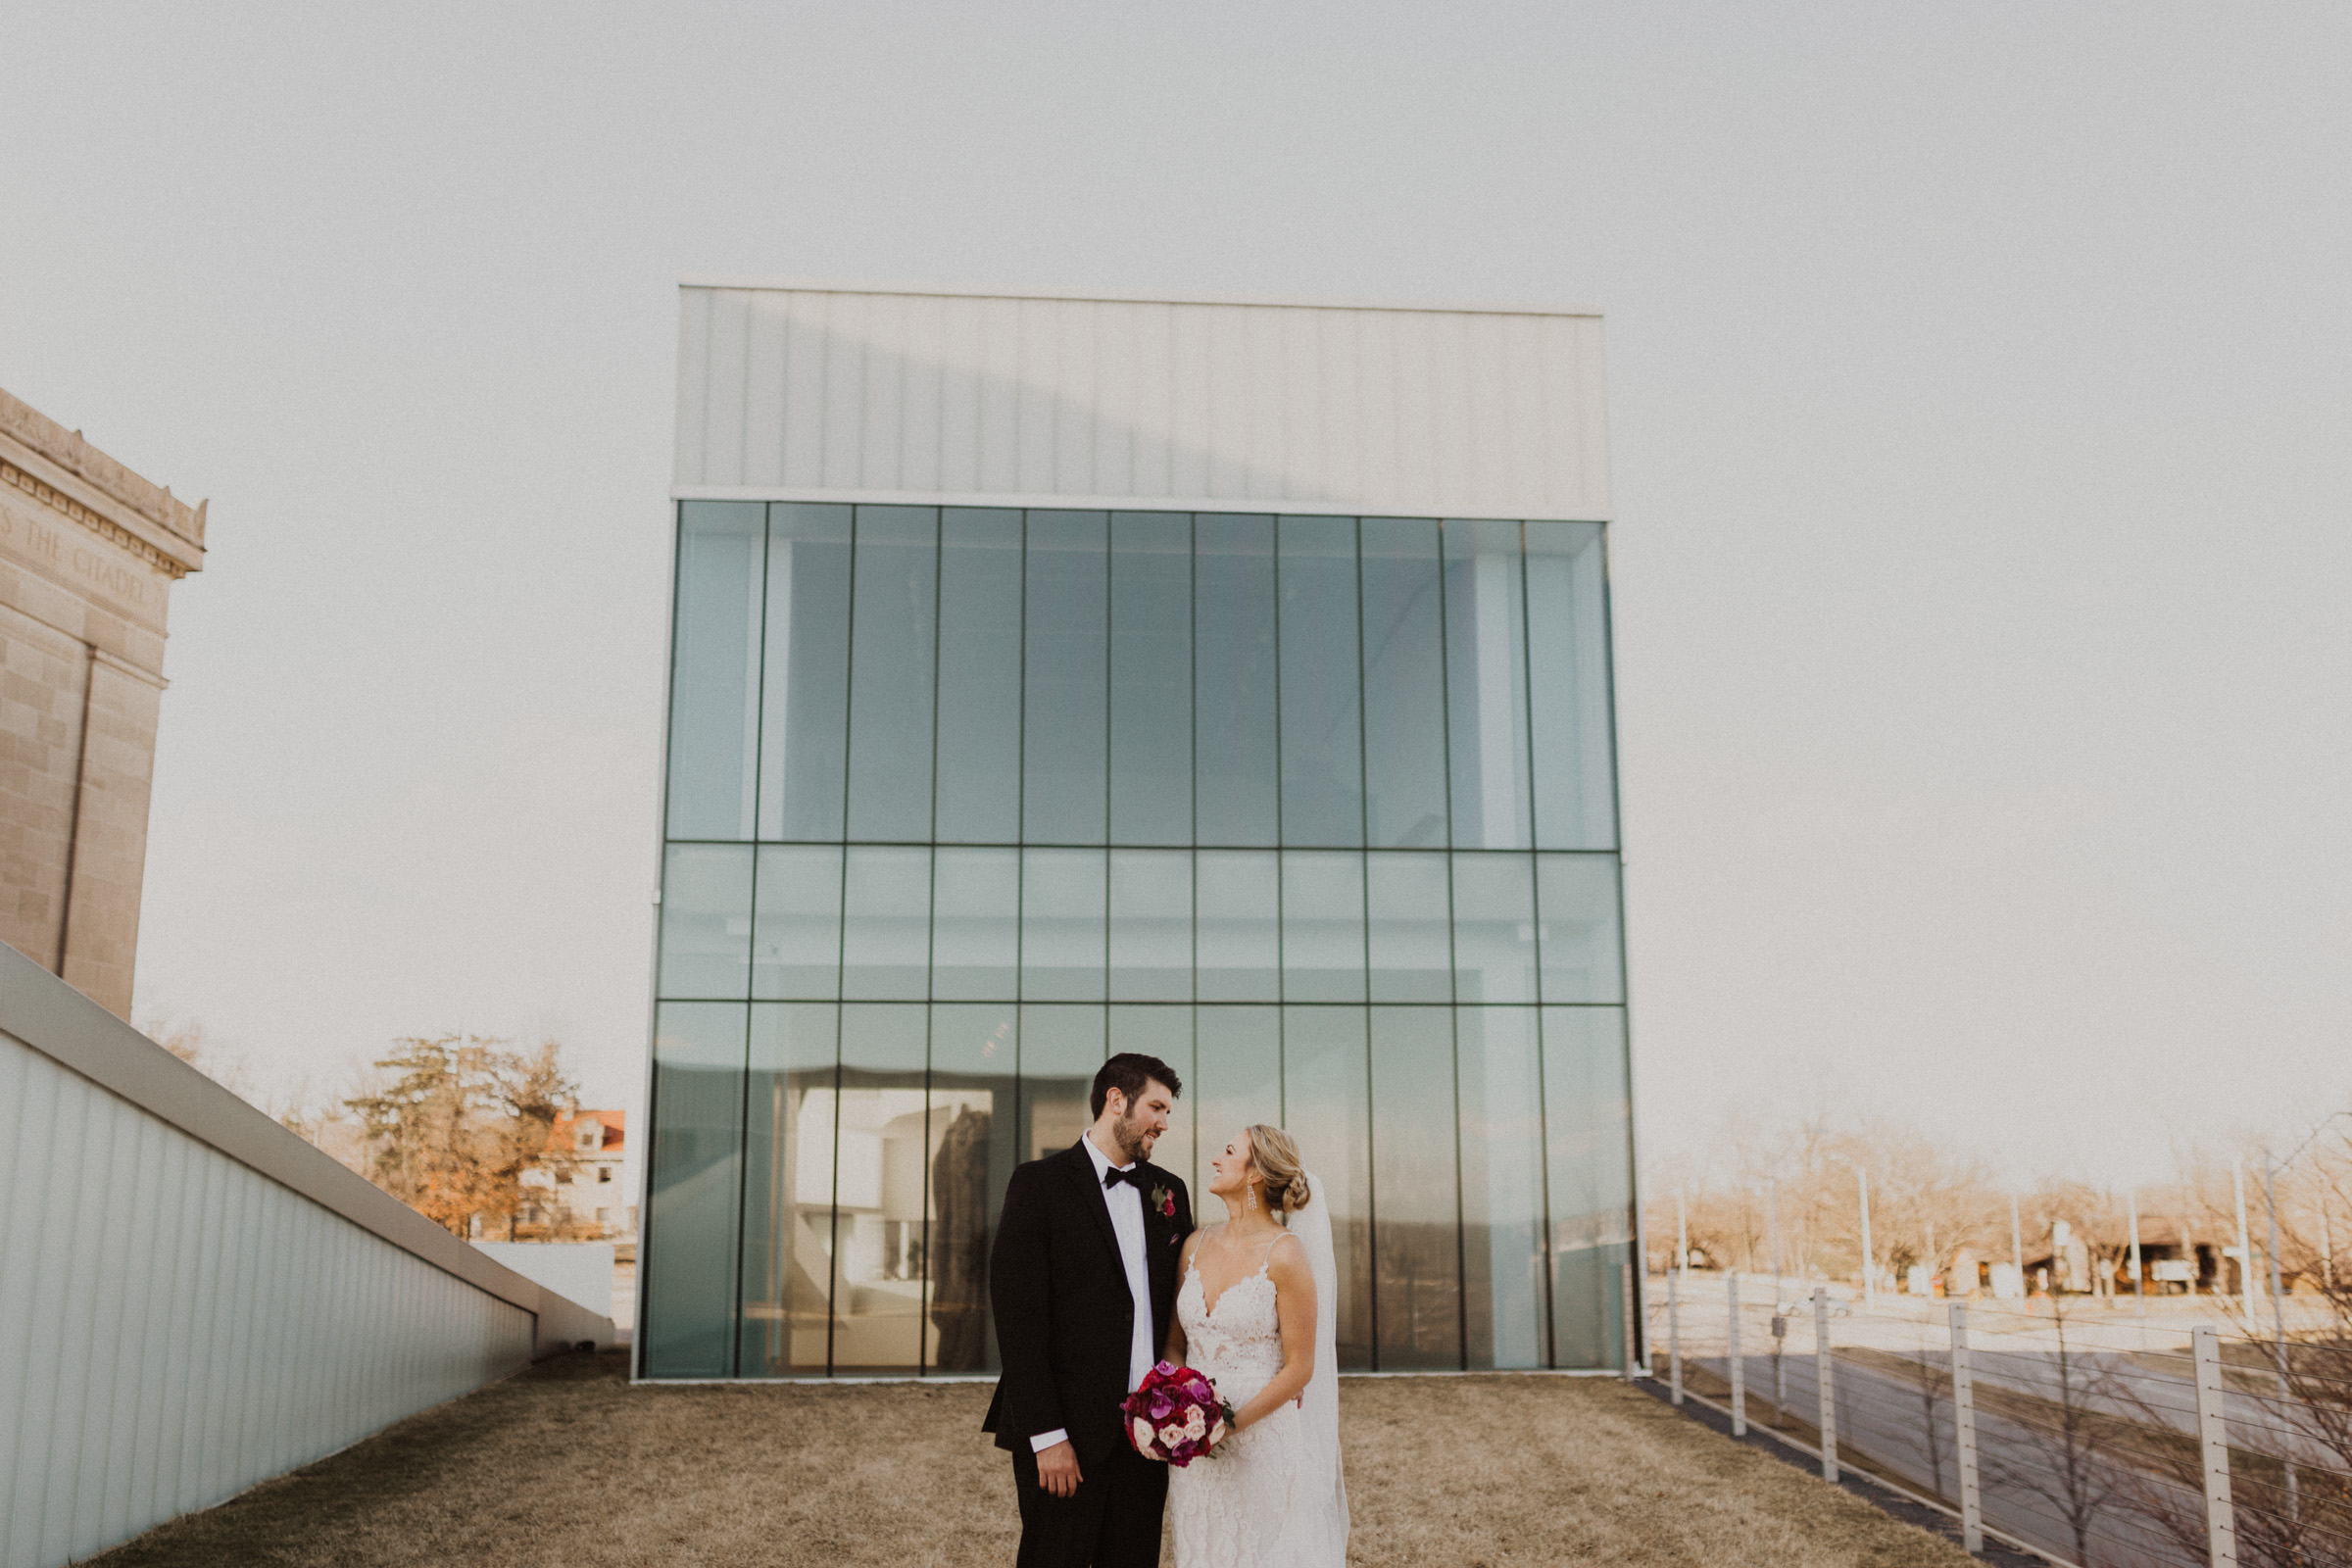 alyssa barletter photography nelson atkins museum intimate romantic spring wedding pilgrim chapel kcmo-29.jpg